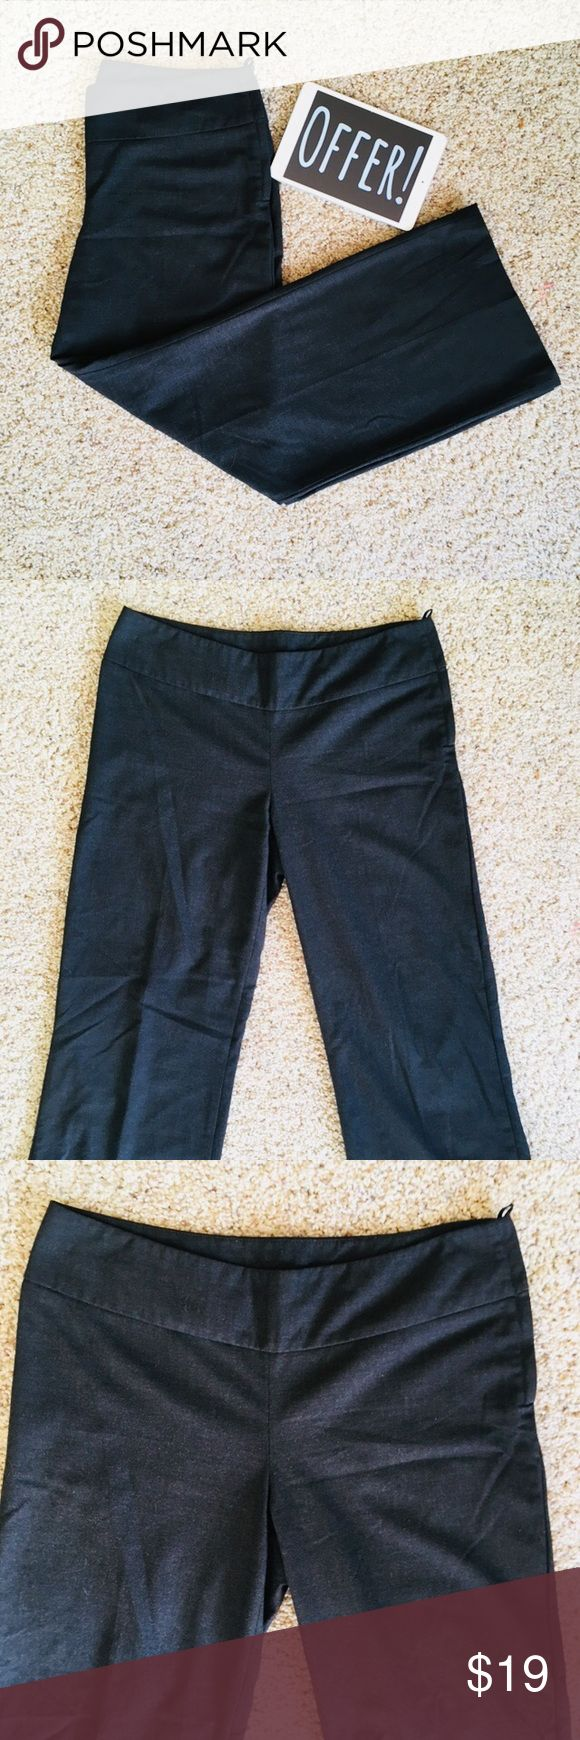 👖 [size: 10] H&M Navy Dress Pants Beautiful Pair Of H&M Dress Pants With Side Zipper/Button ! Barely Worn, No Tears, and No Holes! Accepting All Reasonable Offers and Able To Ship The Same Day!   Great Condition | No Stains | Fully Inspected  Size: 10 H&M Pants Trousers